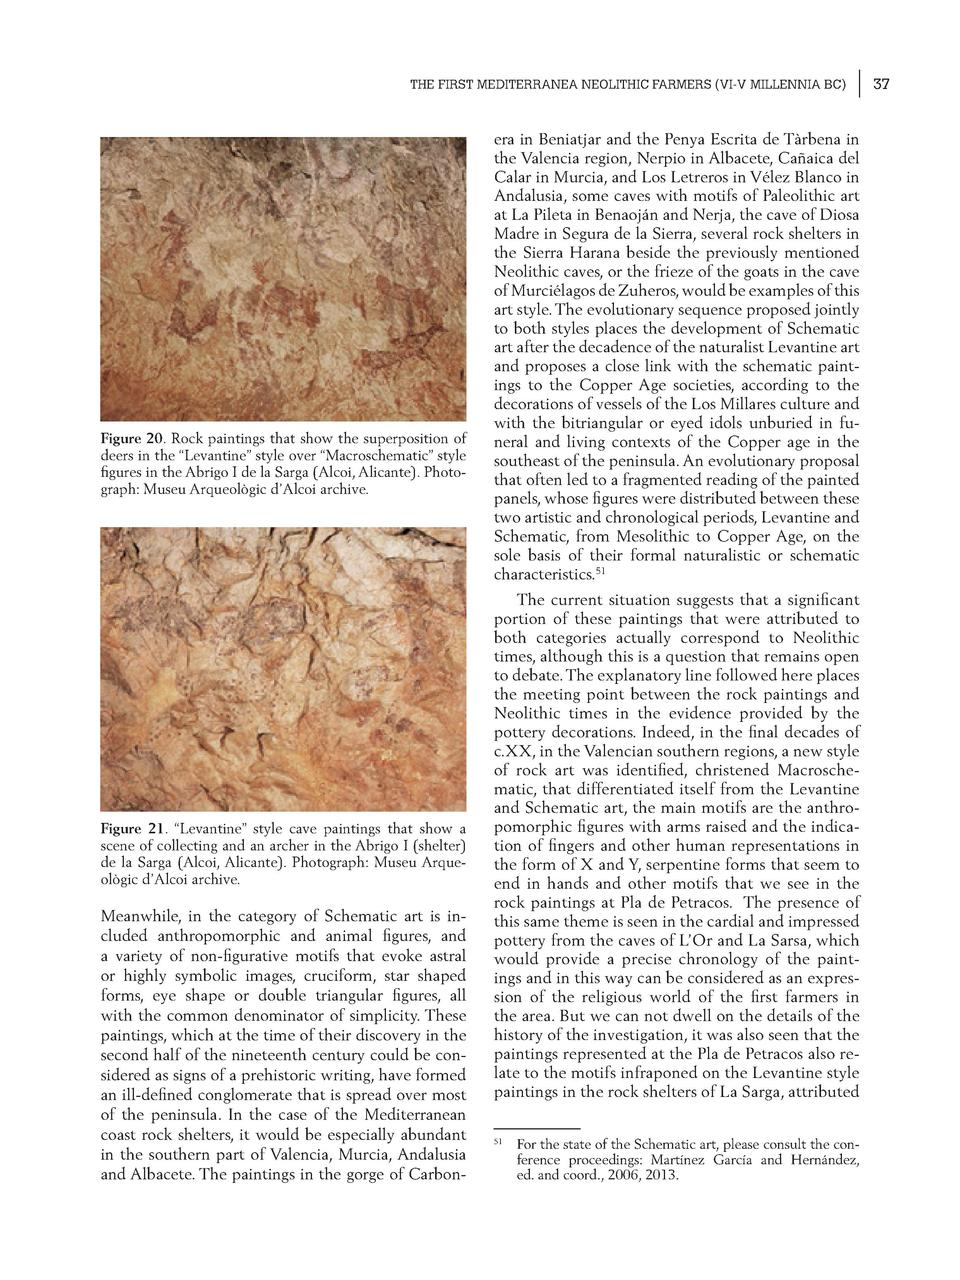 THE FIRST MEDITERRANEA NEOLITHIC FARMERS  VI-V MILLENNIA BC   Figure 20. Rock paintings that show the superposition of dee...